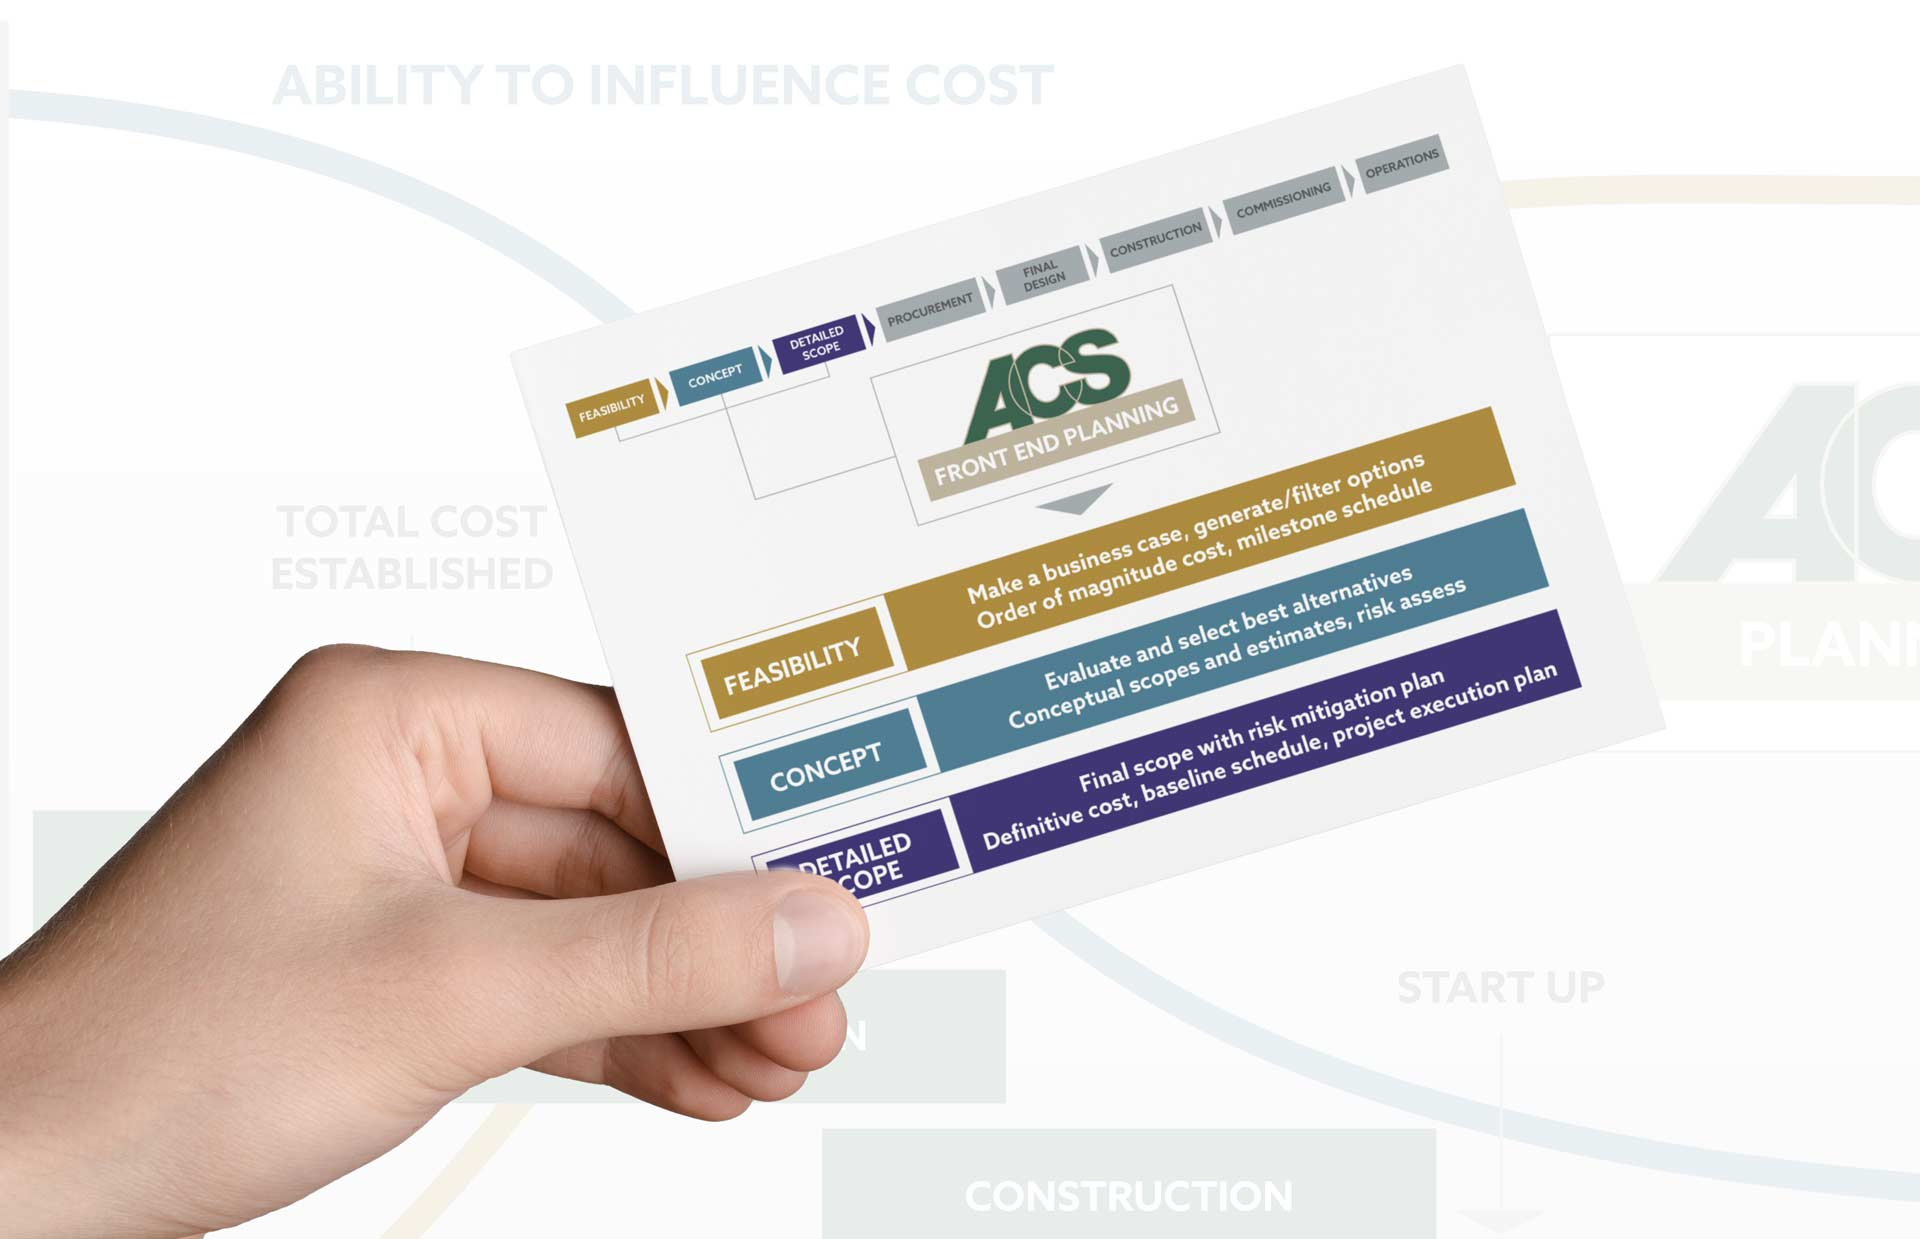 New ACS marketing postcard as part of NAVEO's brand development strategy.